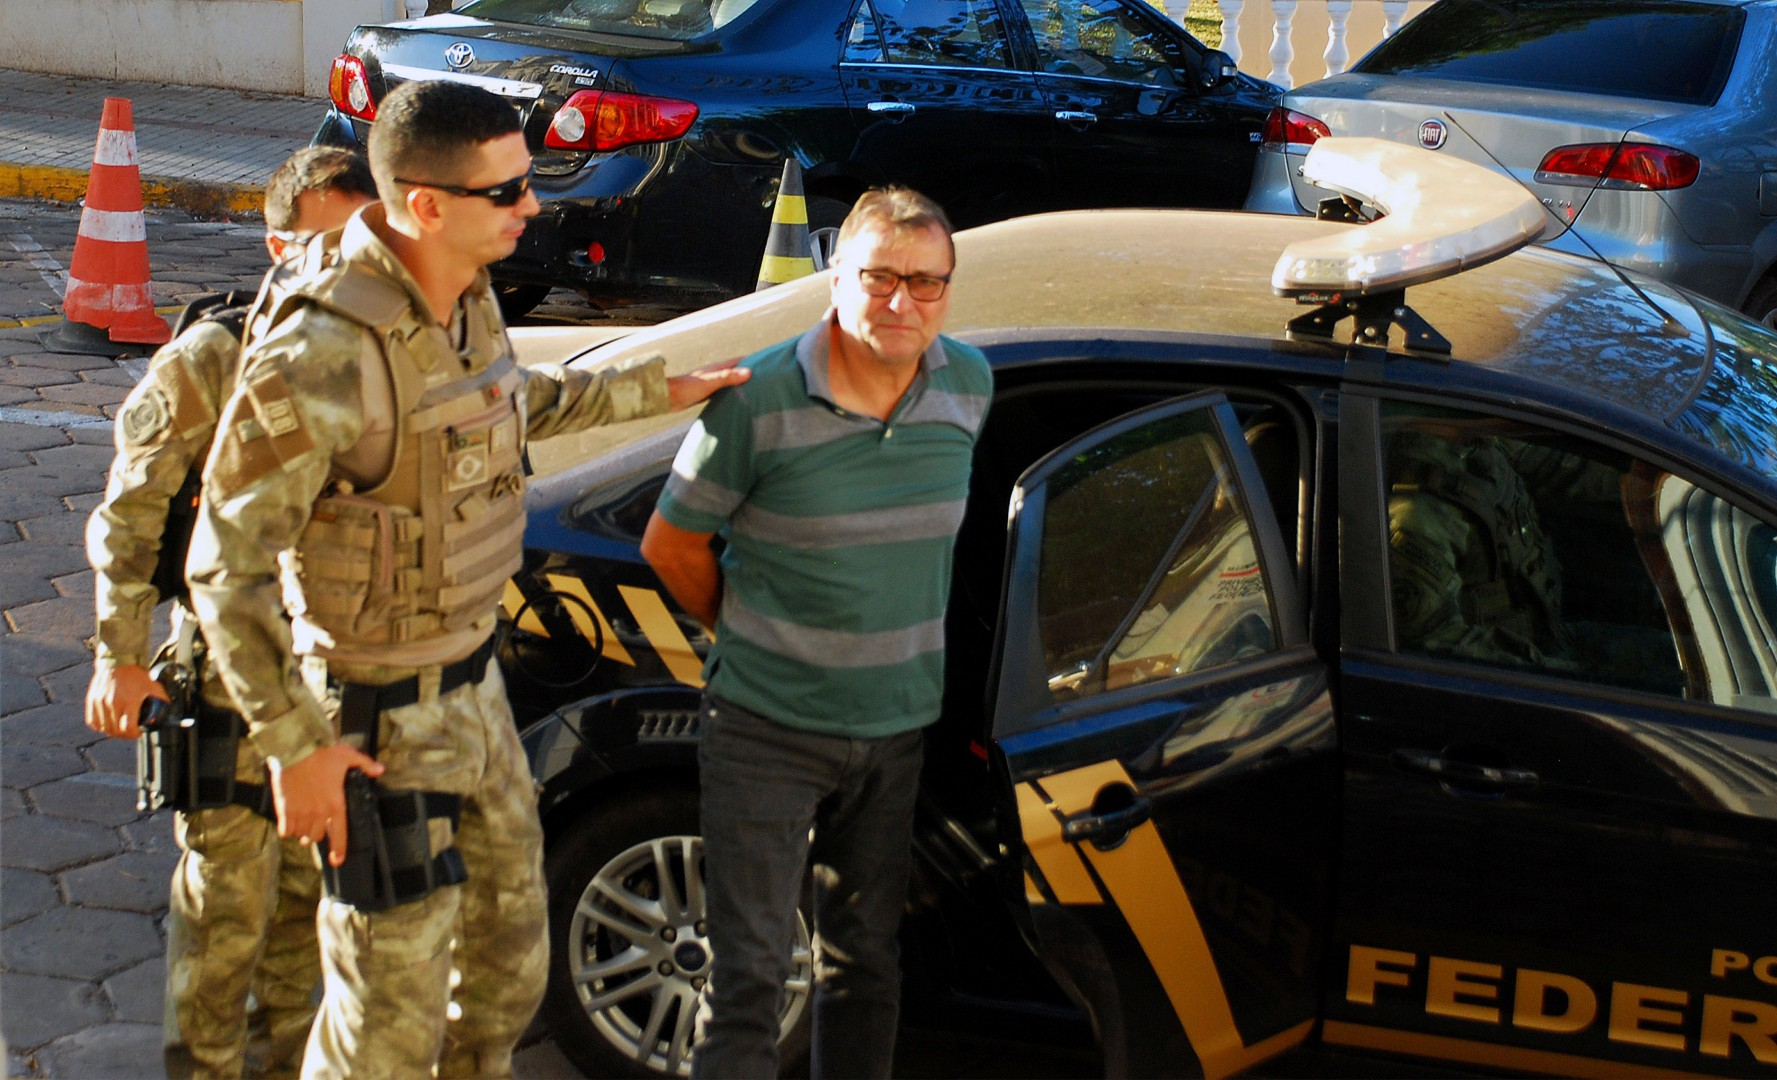 "(FILES) In this file photo taken on October 05, 2017 Italian ultra-leftist militant Cesare Battisti arrives escorted by police to the headquarters of the Federal Police in Corumba, Mato Grosso do Sul State, West of Brazil, after a federal judge ordered his preventive detention. - Brazil's far-right presidential frontrunner Jair Bolsonaro said on October 16, 2018 that, if he won, he would extradite ""the terrorist"" Cesare Battisti, an Italian wanted in his homeland for four murders attributed to a far-left extremist group in the 1970s. (Photo by FABIO MARCHI / AFP)"